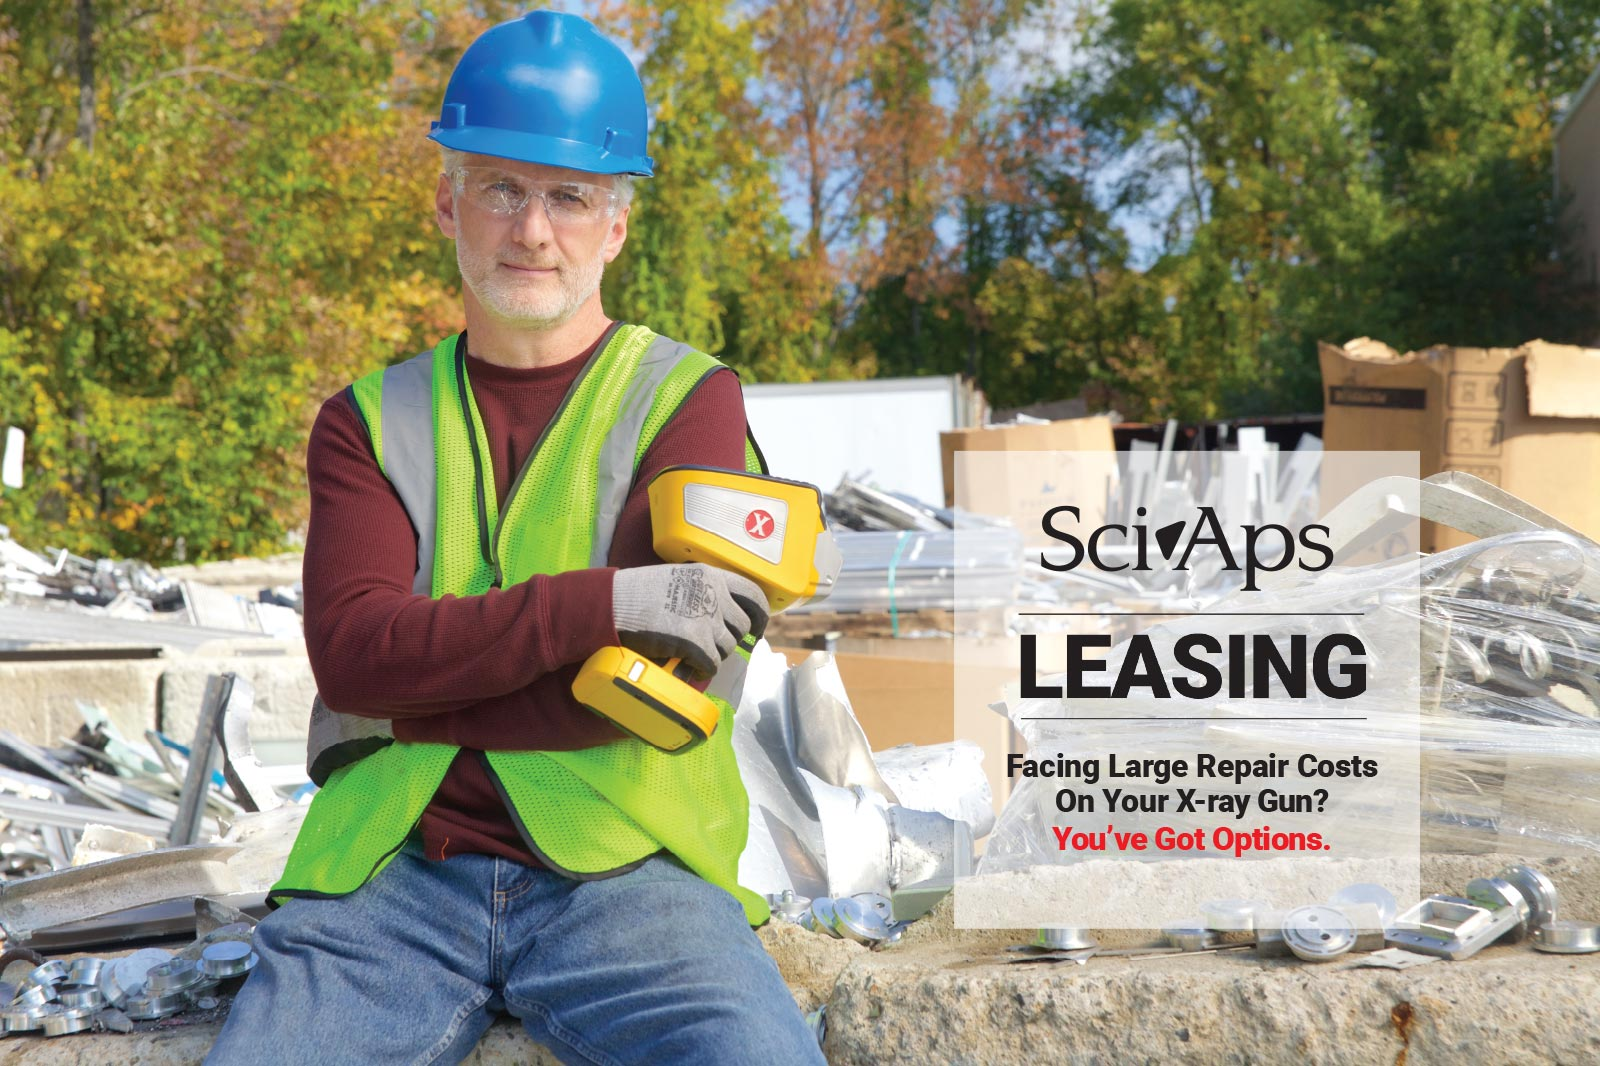 SciAps Leasing - Facing large repair costs on your x-ray gun? You've got options.